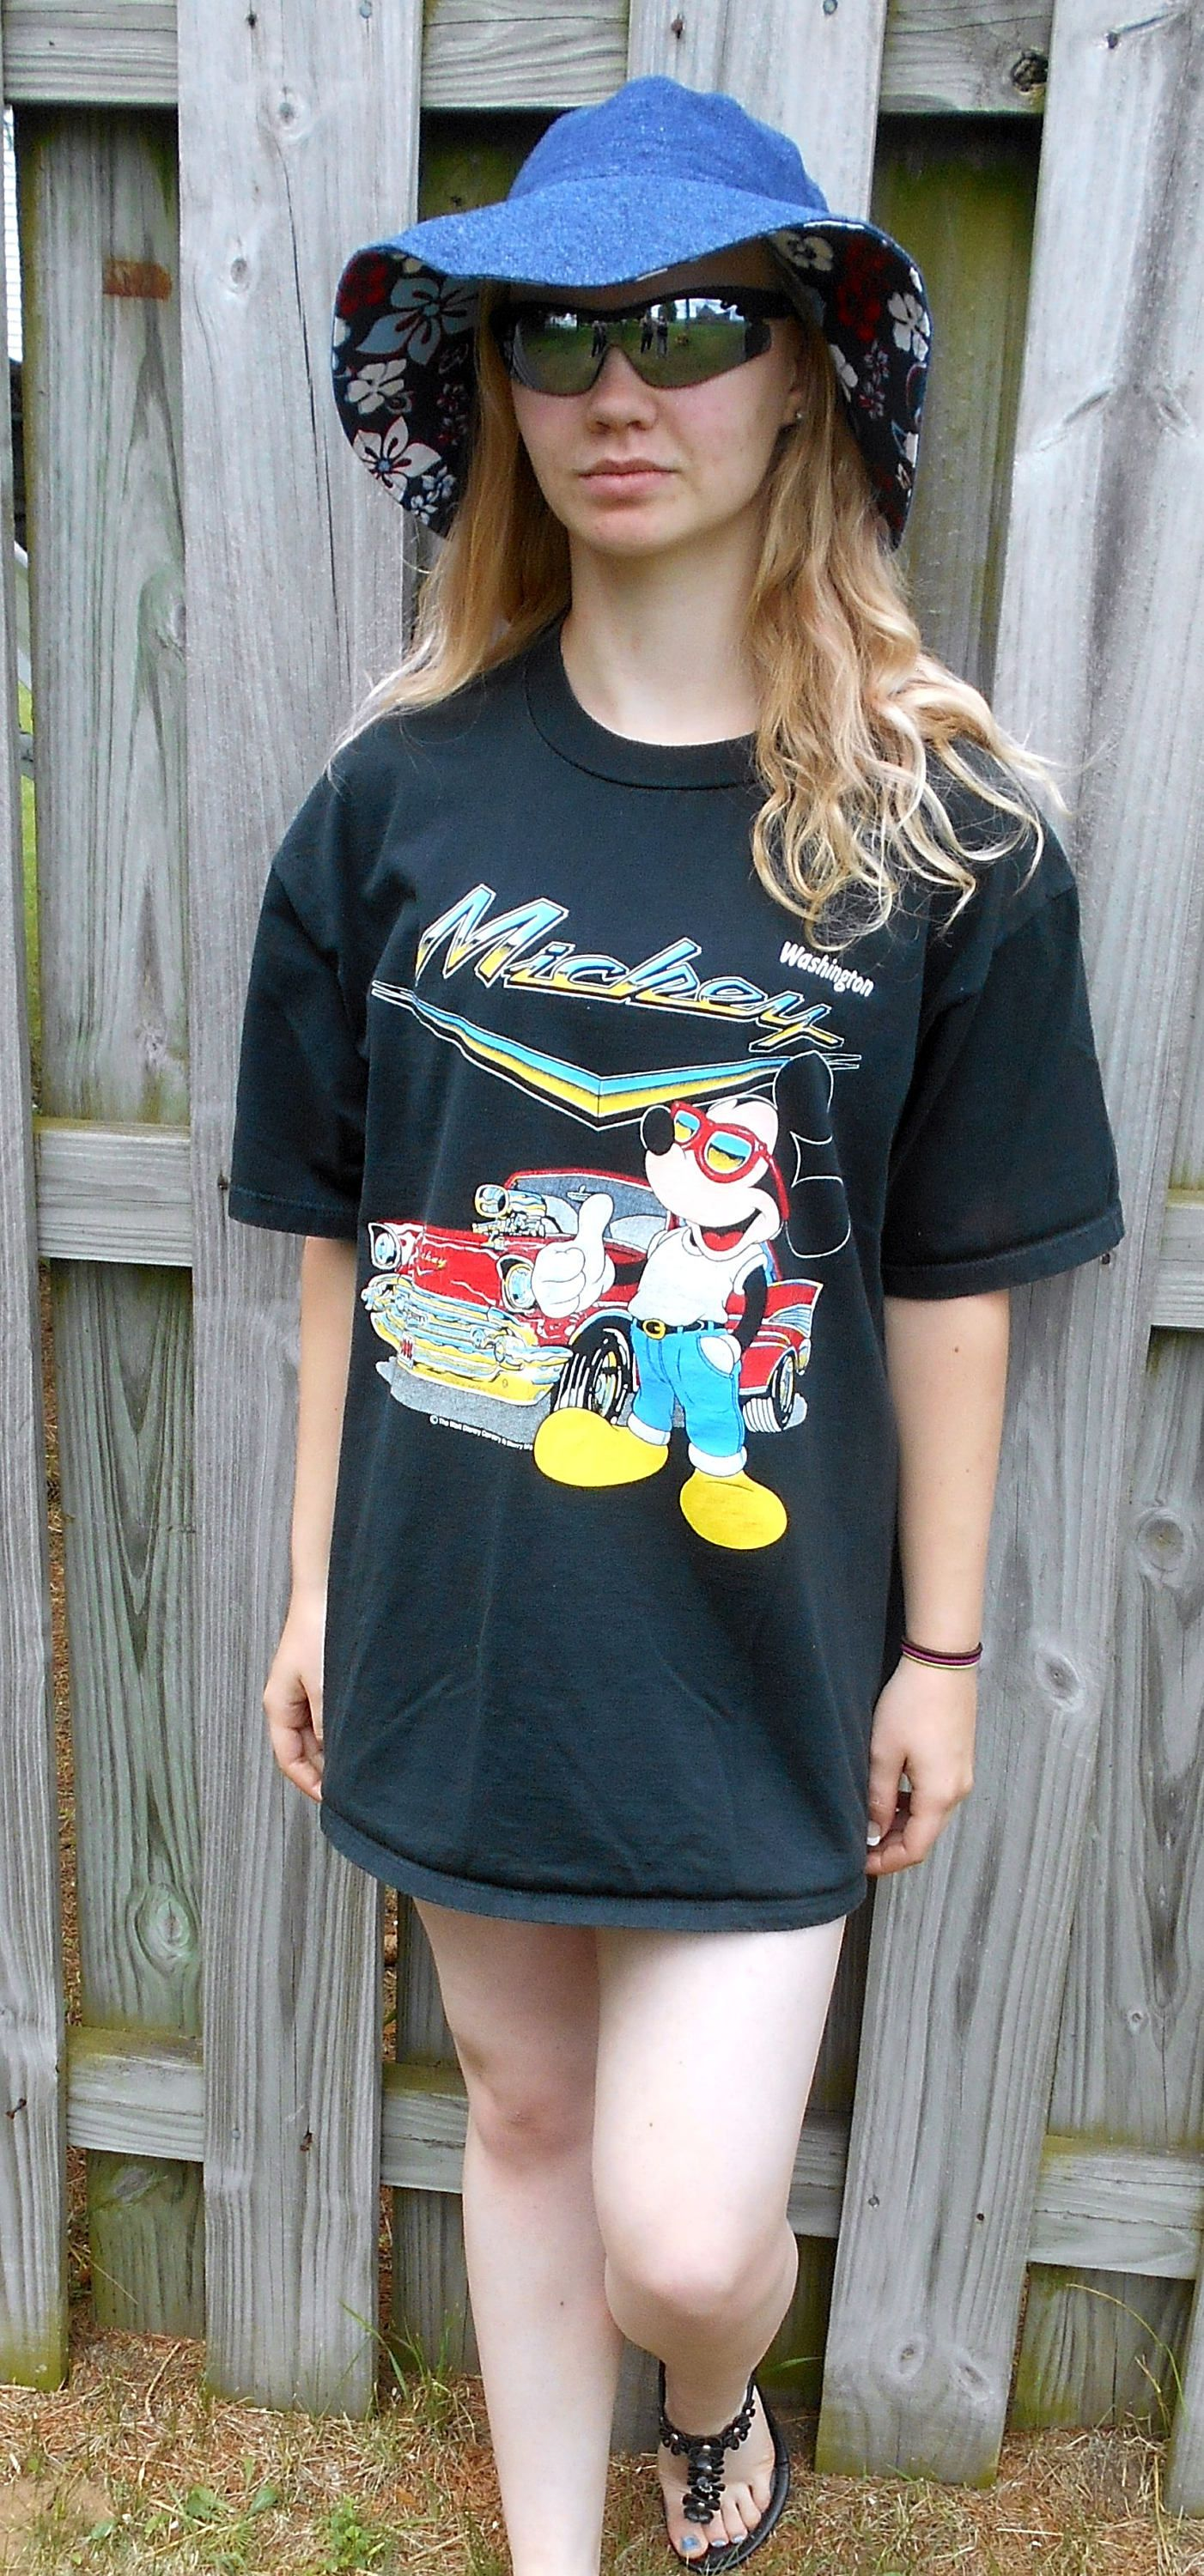 Black t shirt dress etsy - Vintage 90s Mickey Mouse Hot Rod Classic Car Hip Hop Tee T Shirt Walt Disney Washington